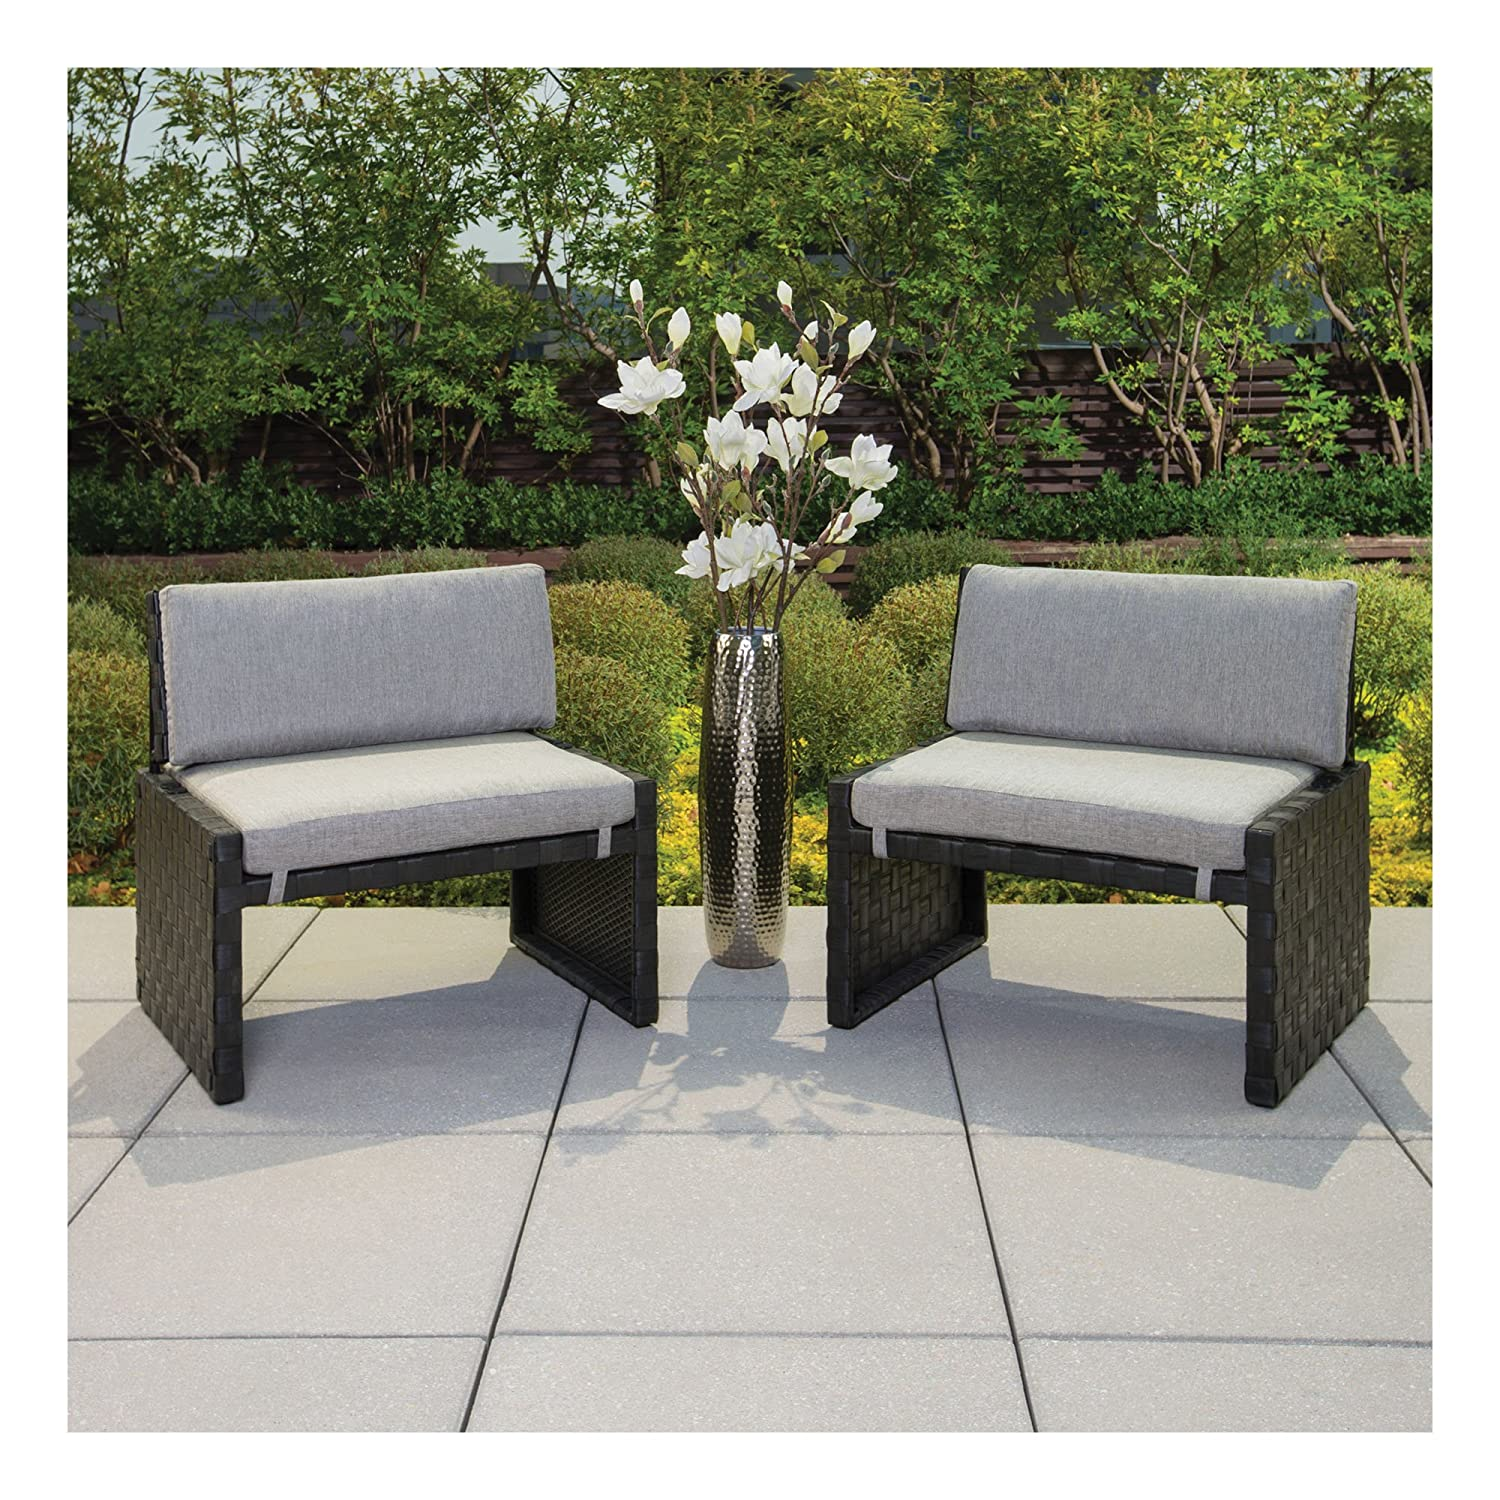 Cambria Patio Sectional Seating Set 2 Pack by La Z Boy Outdoor